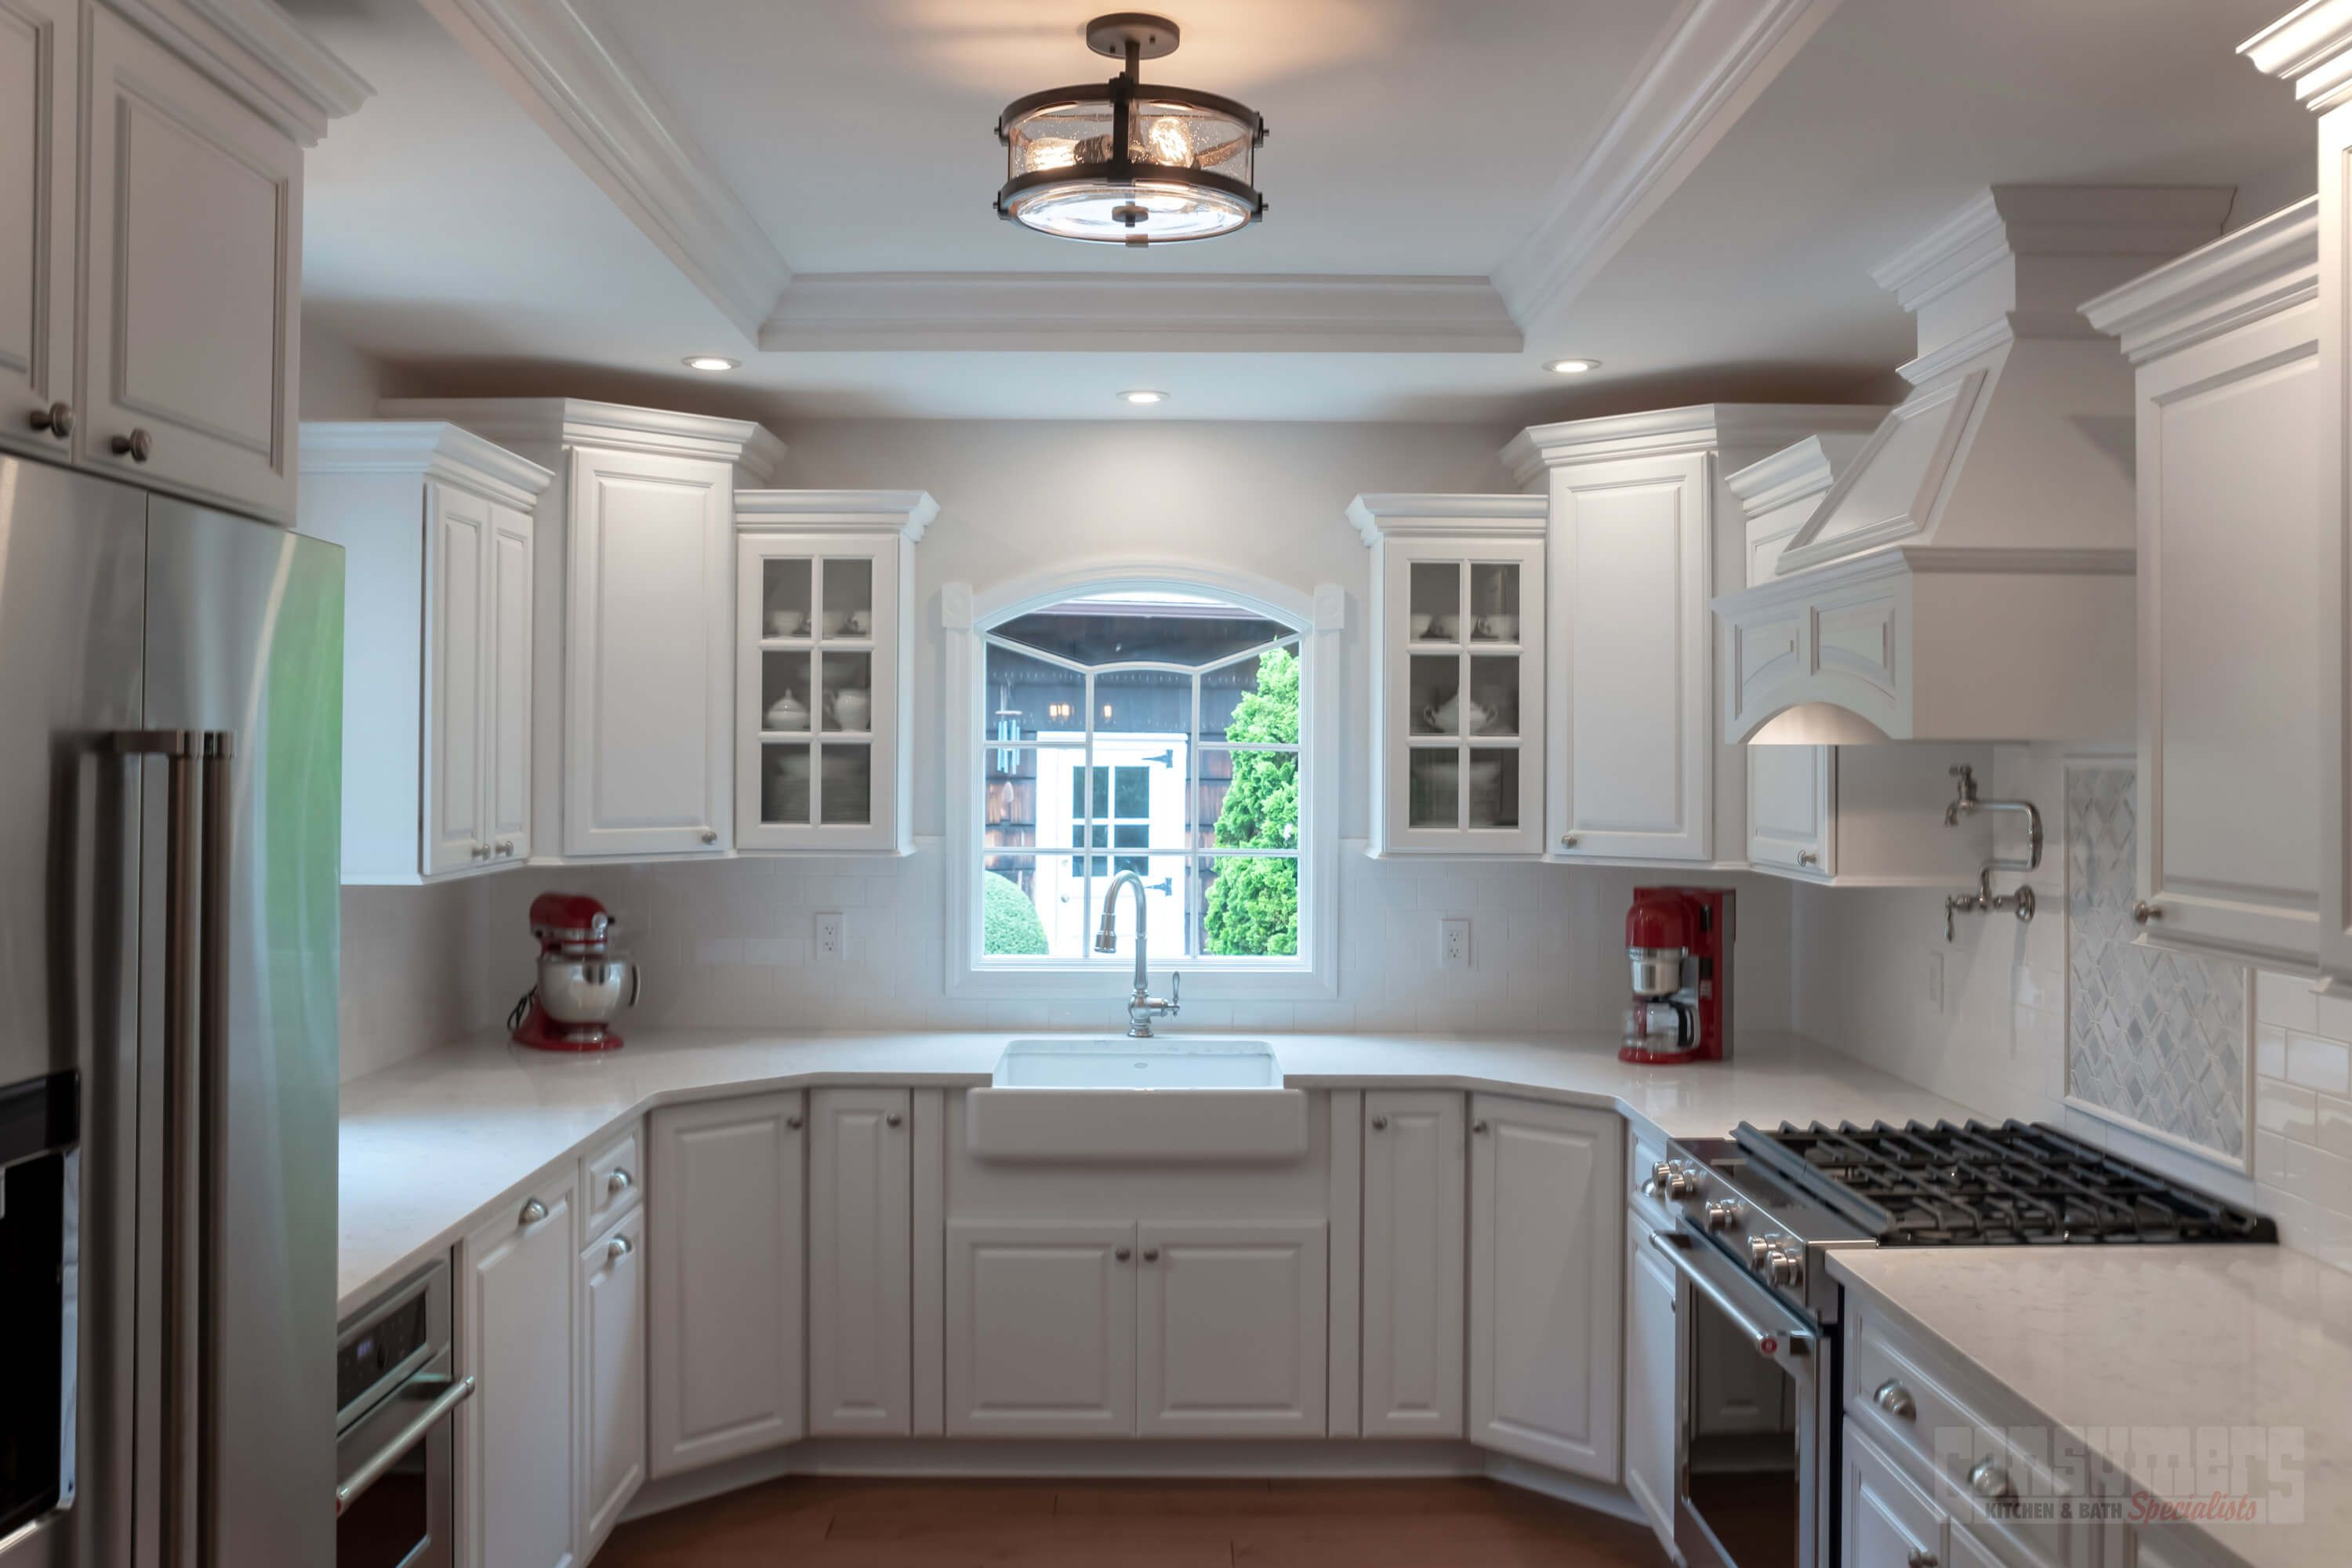 Pin by Consumers Kitchens & Baths on Heavenly Huntington ...